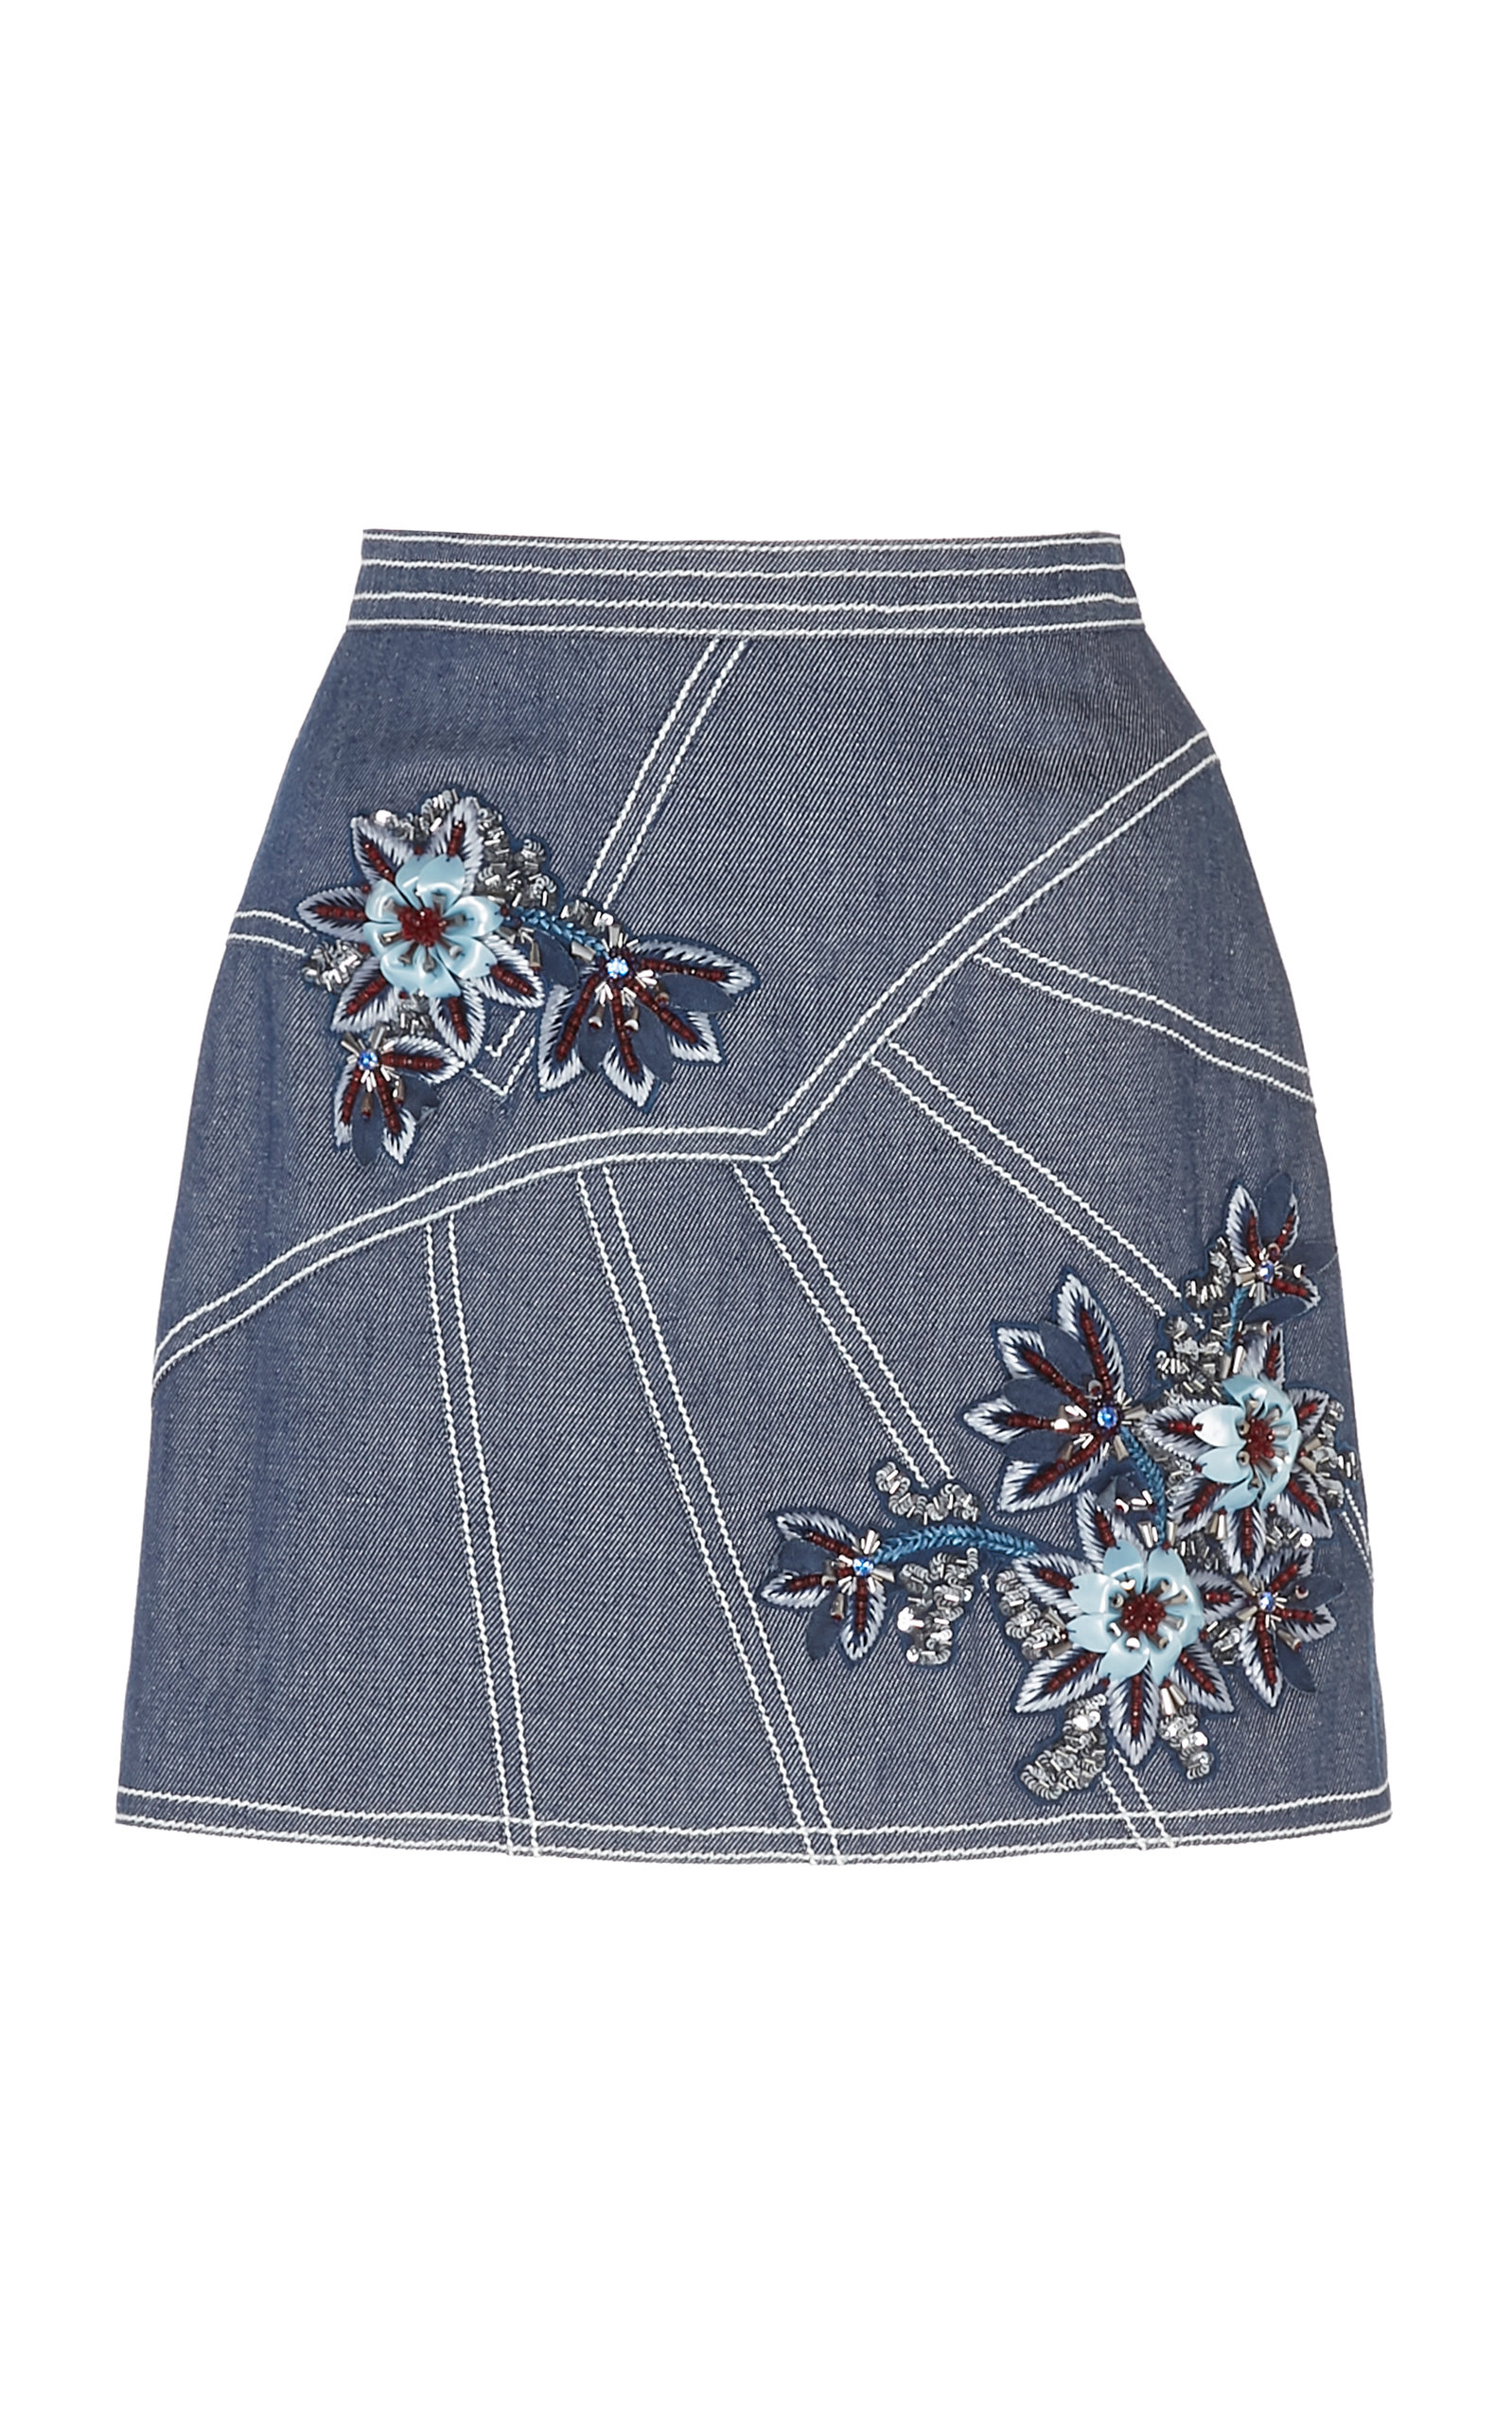 d34e3cc8a4 Floral-Embroidered Denim Skirt by Andrew Gn | Moda Operandi